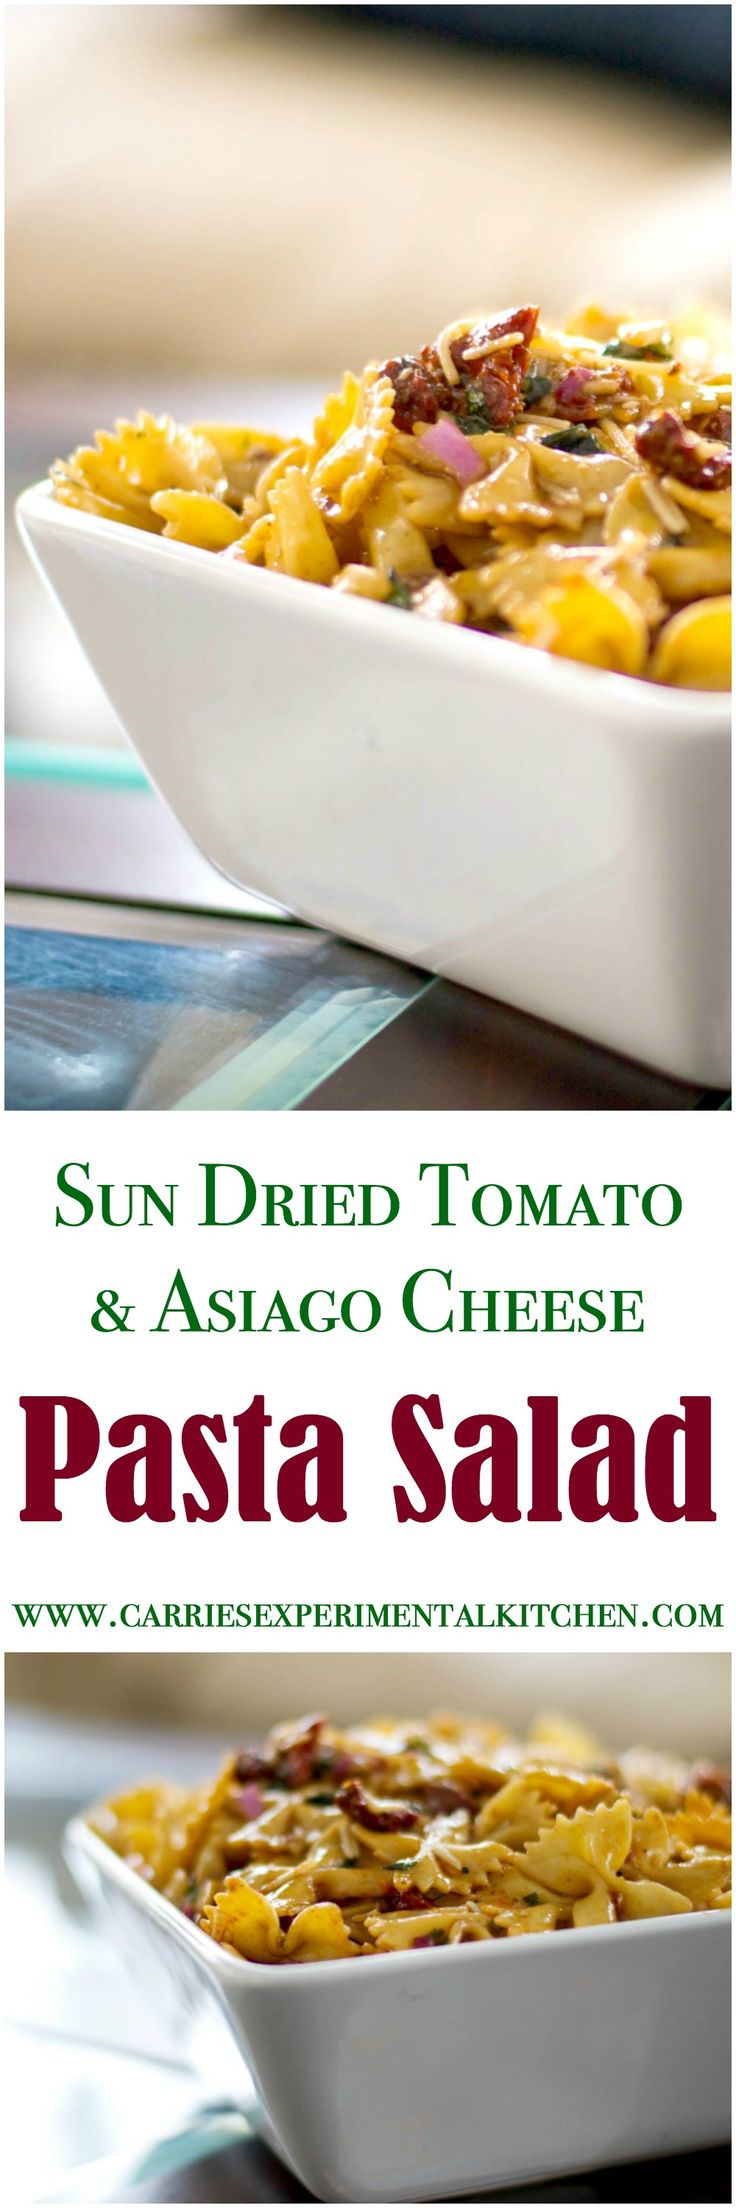 Sun Dried Tomato & Asiago Cheese Pasta Salad made with bow tie pasta, oil packed sun dried tomatoes, freshly shredded Asiago PDO cheese and basil in a balsamic vinaigrette.